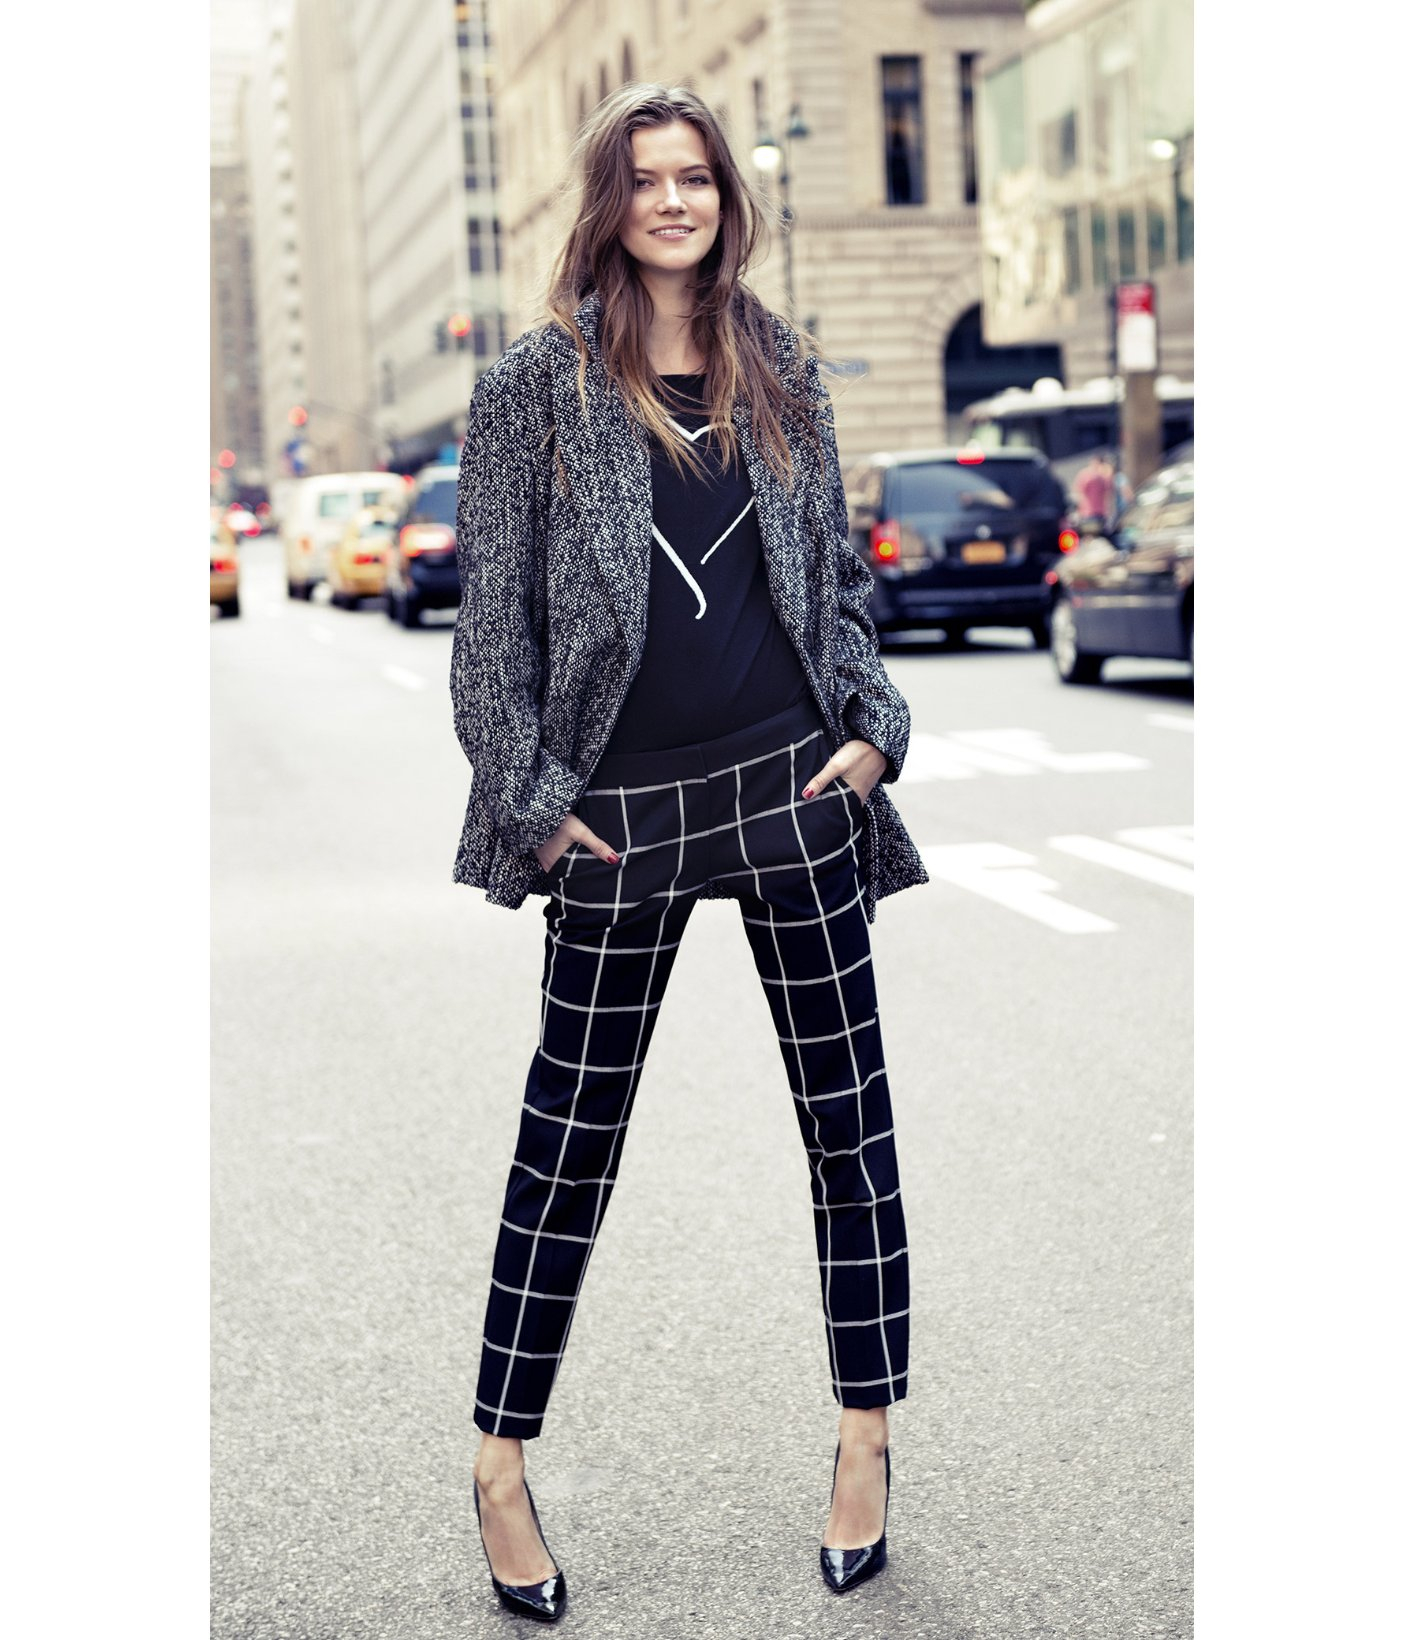 Express Windowpane Plaid Columnist Ankle Pant in Black | Lyst